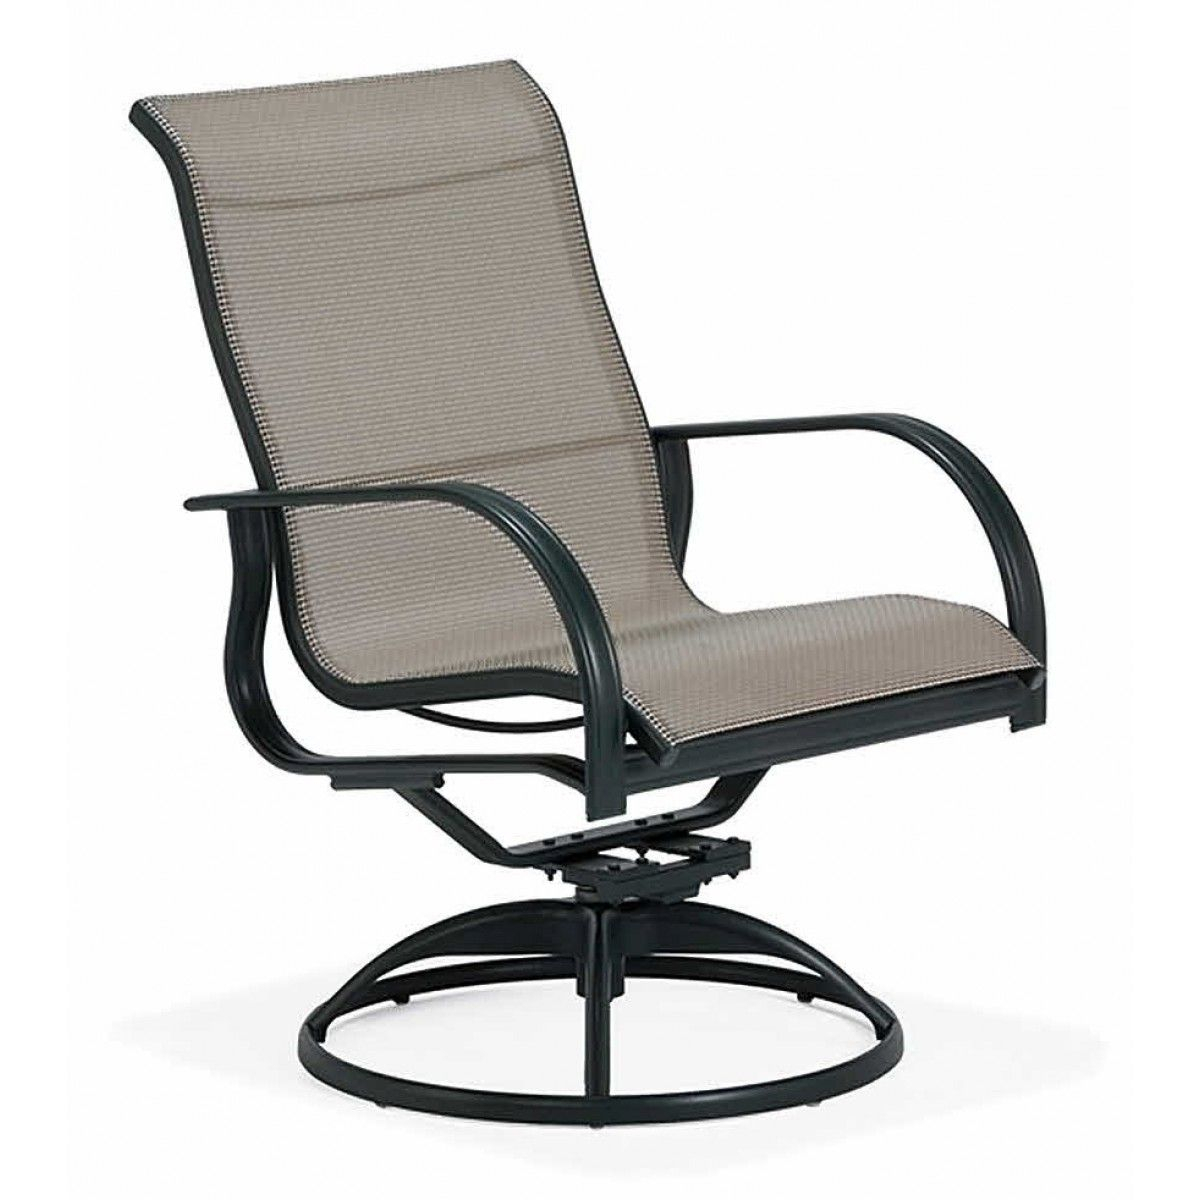 Winston Mayfair Collection Sling High Back Swivel Tilt With Regard To Sling High Back Swivel Chairs (View 4 of 25)